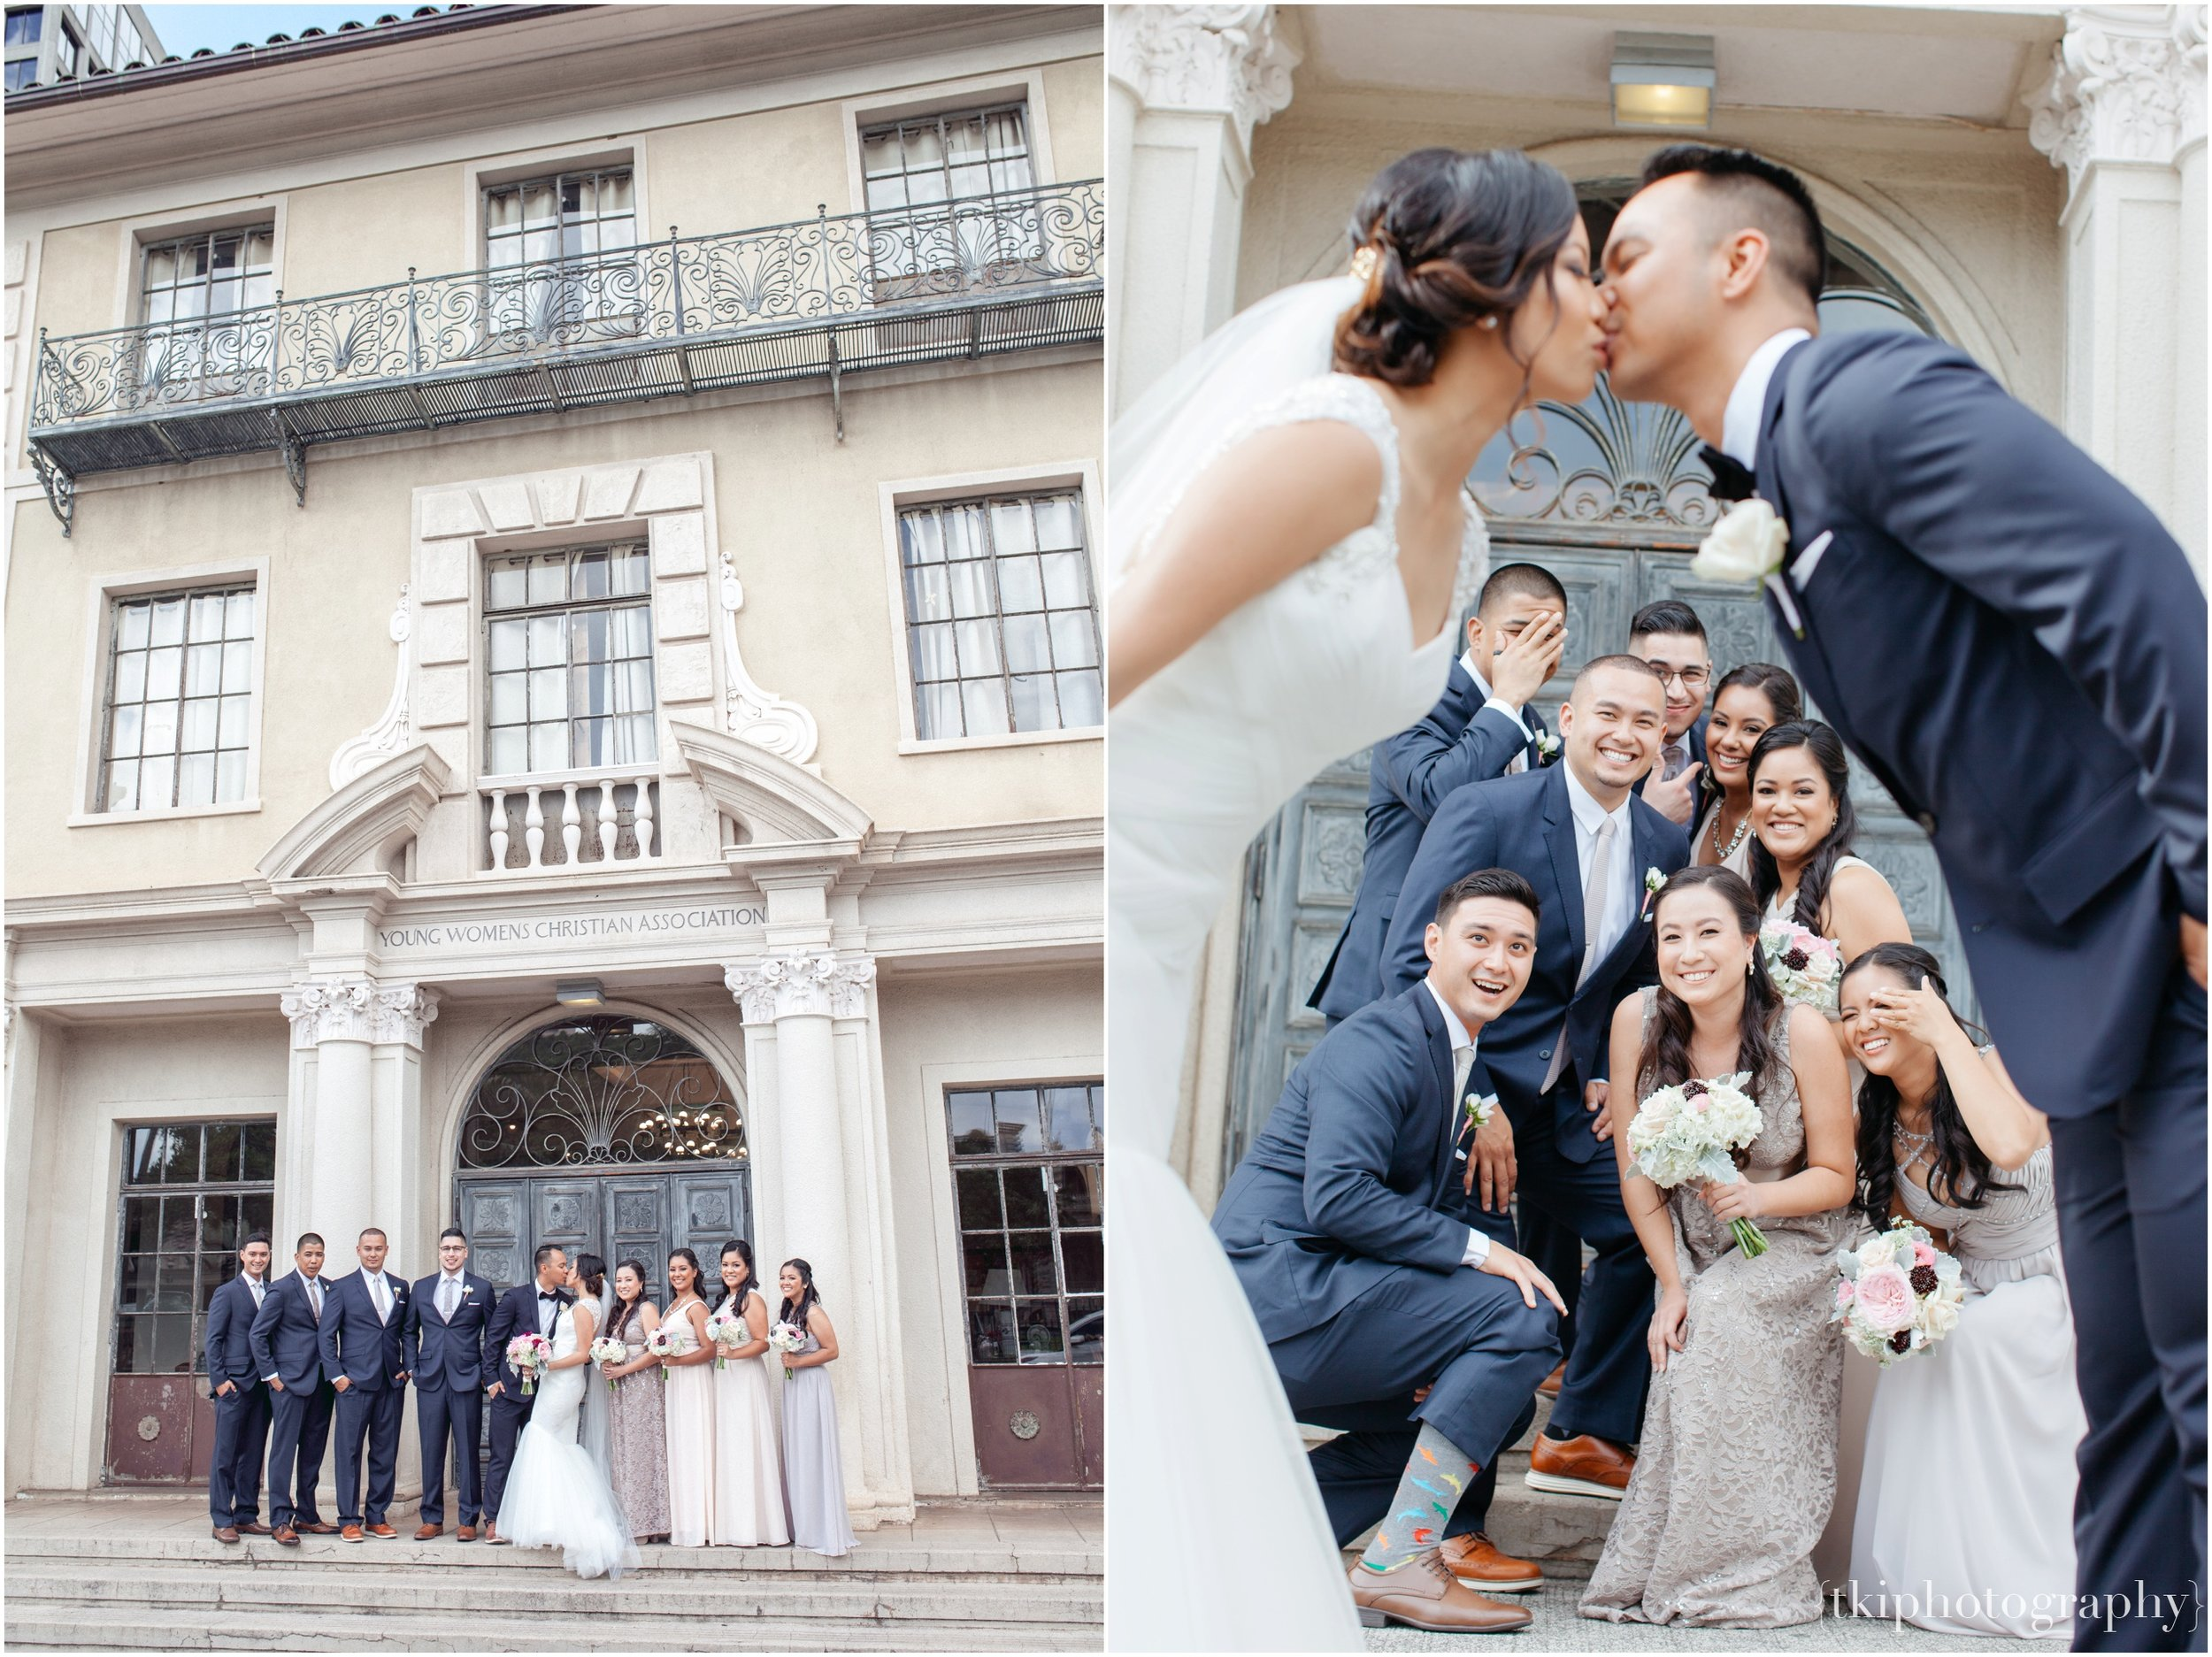 On a good day, having fun with the wedding party are great ways to gain some fun yet memorable shots.